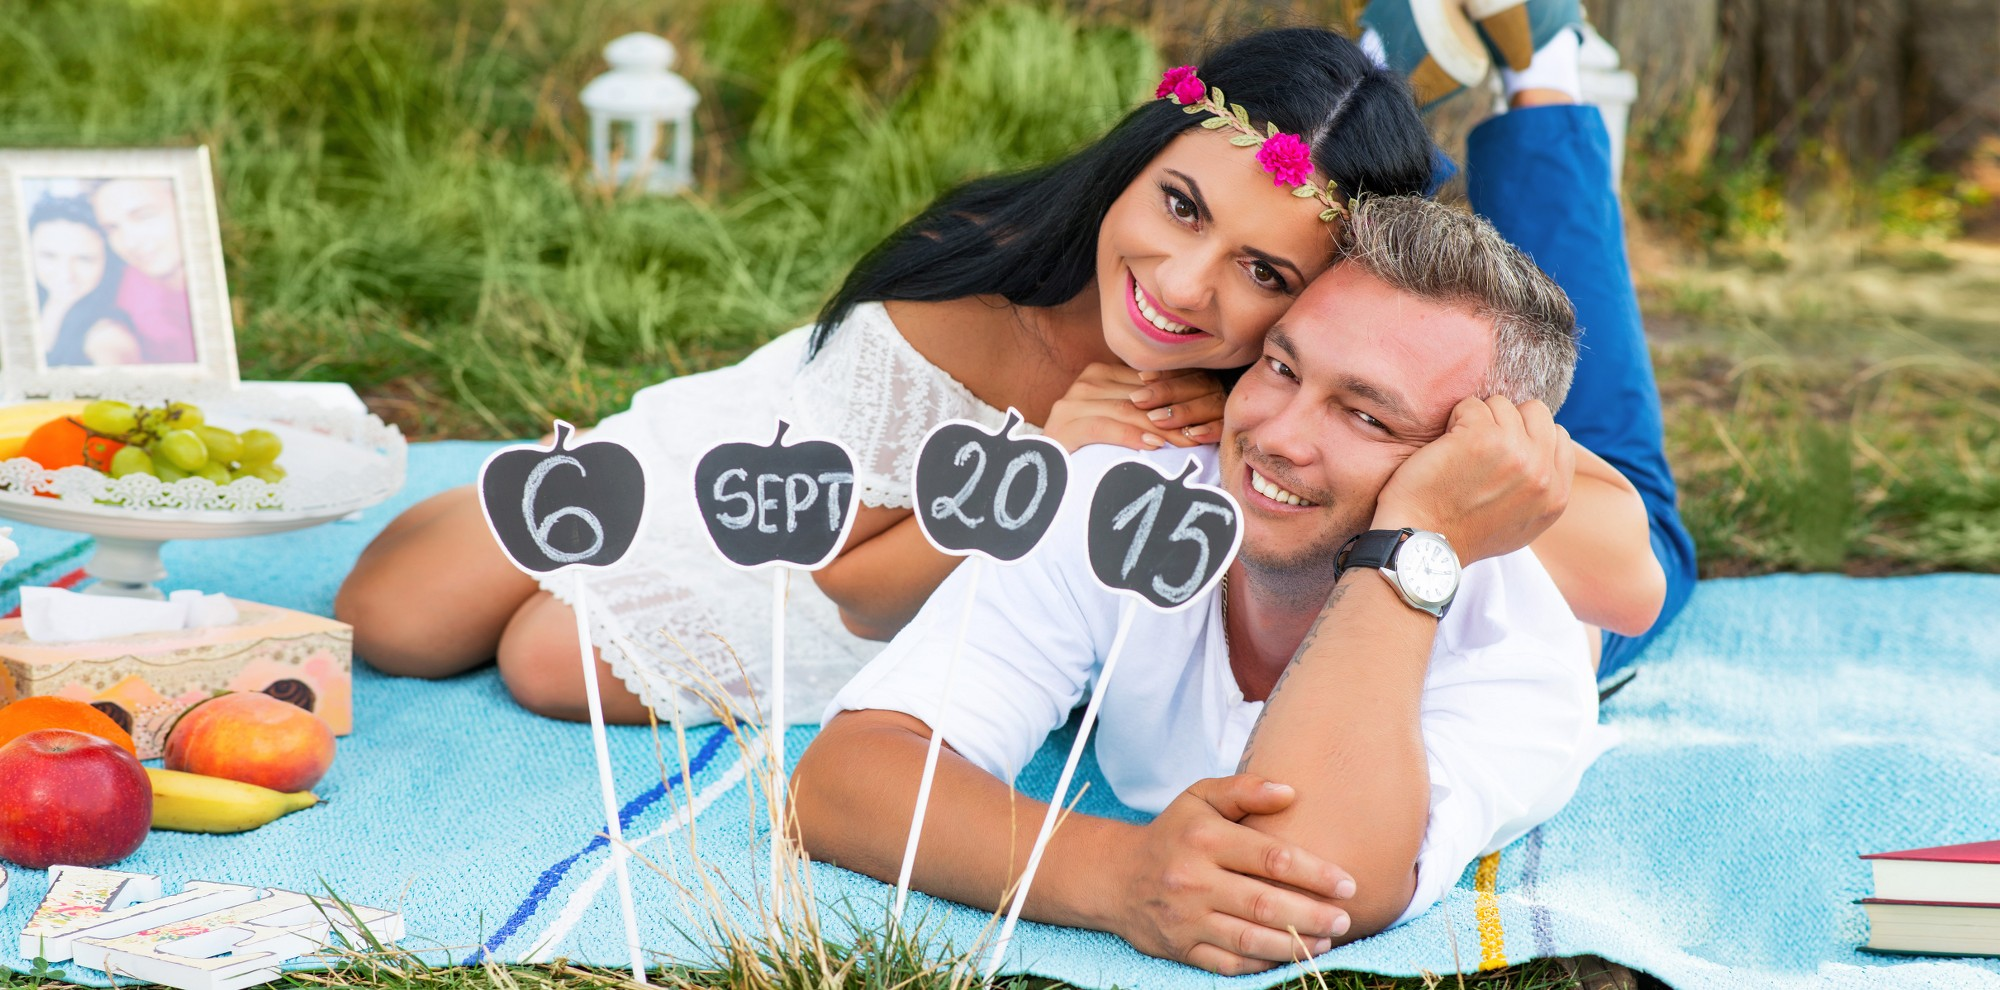 Catalina & Cristian - Save the Date